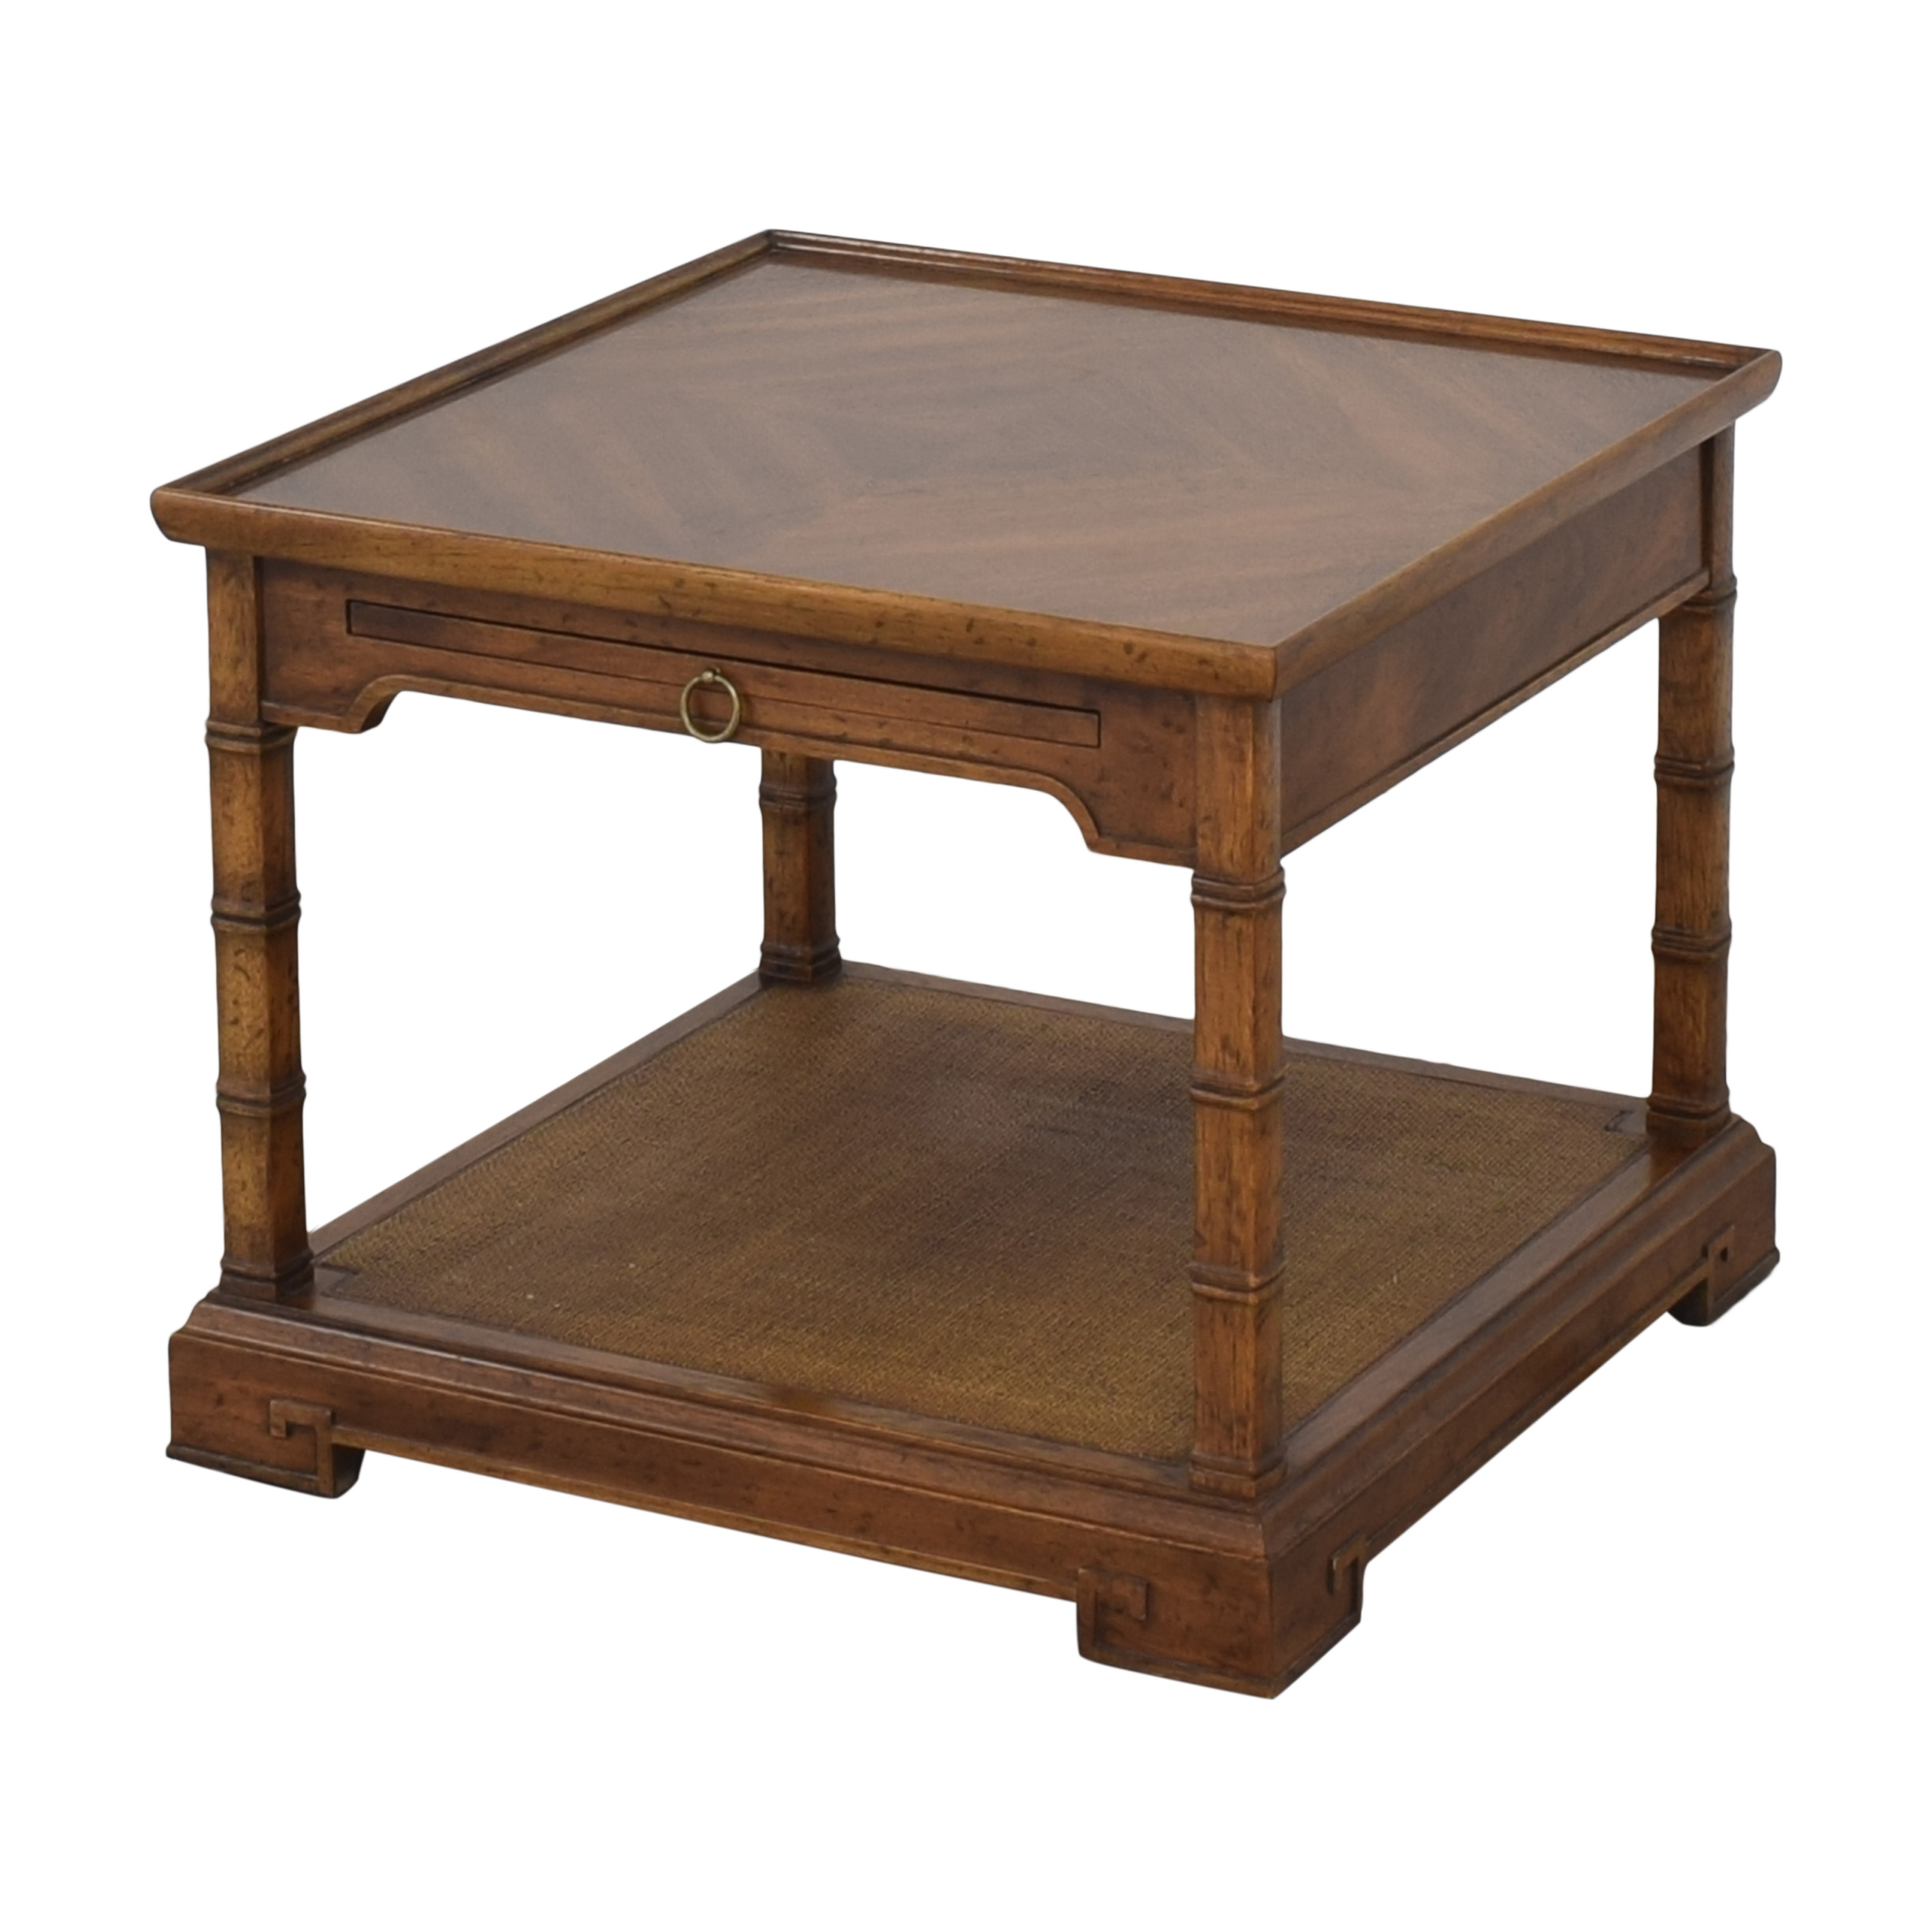 Heritage Heritage End Table with Desk Extension End Tables